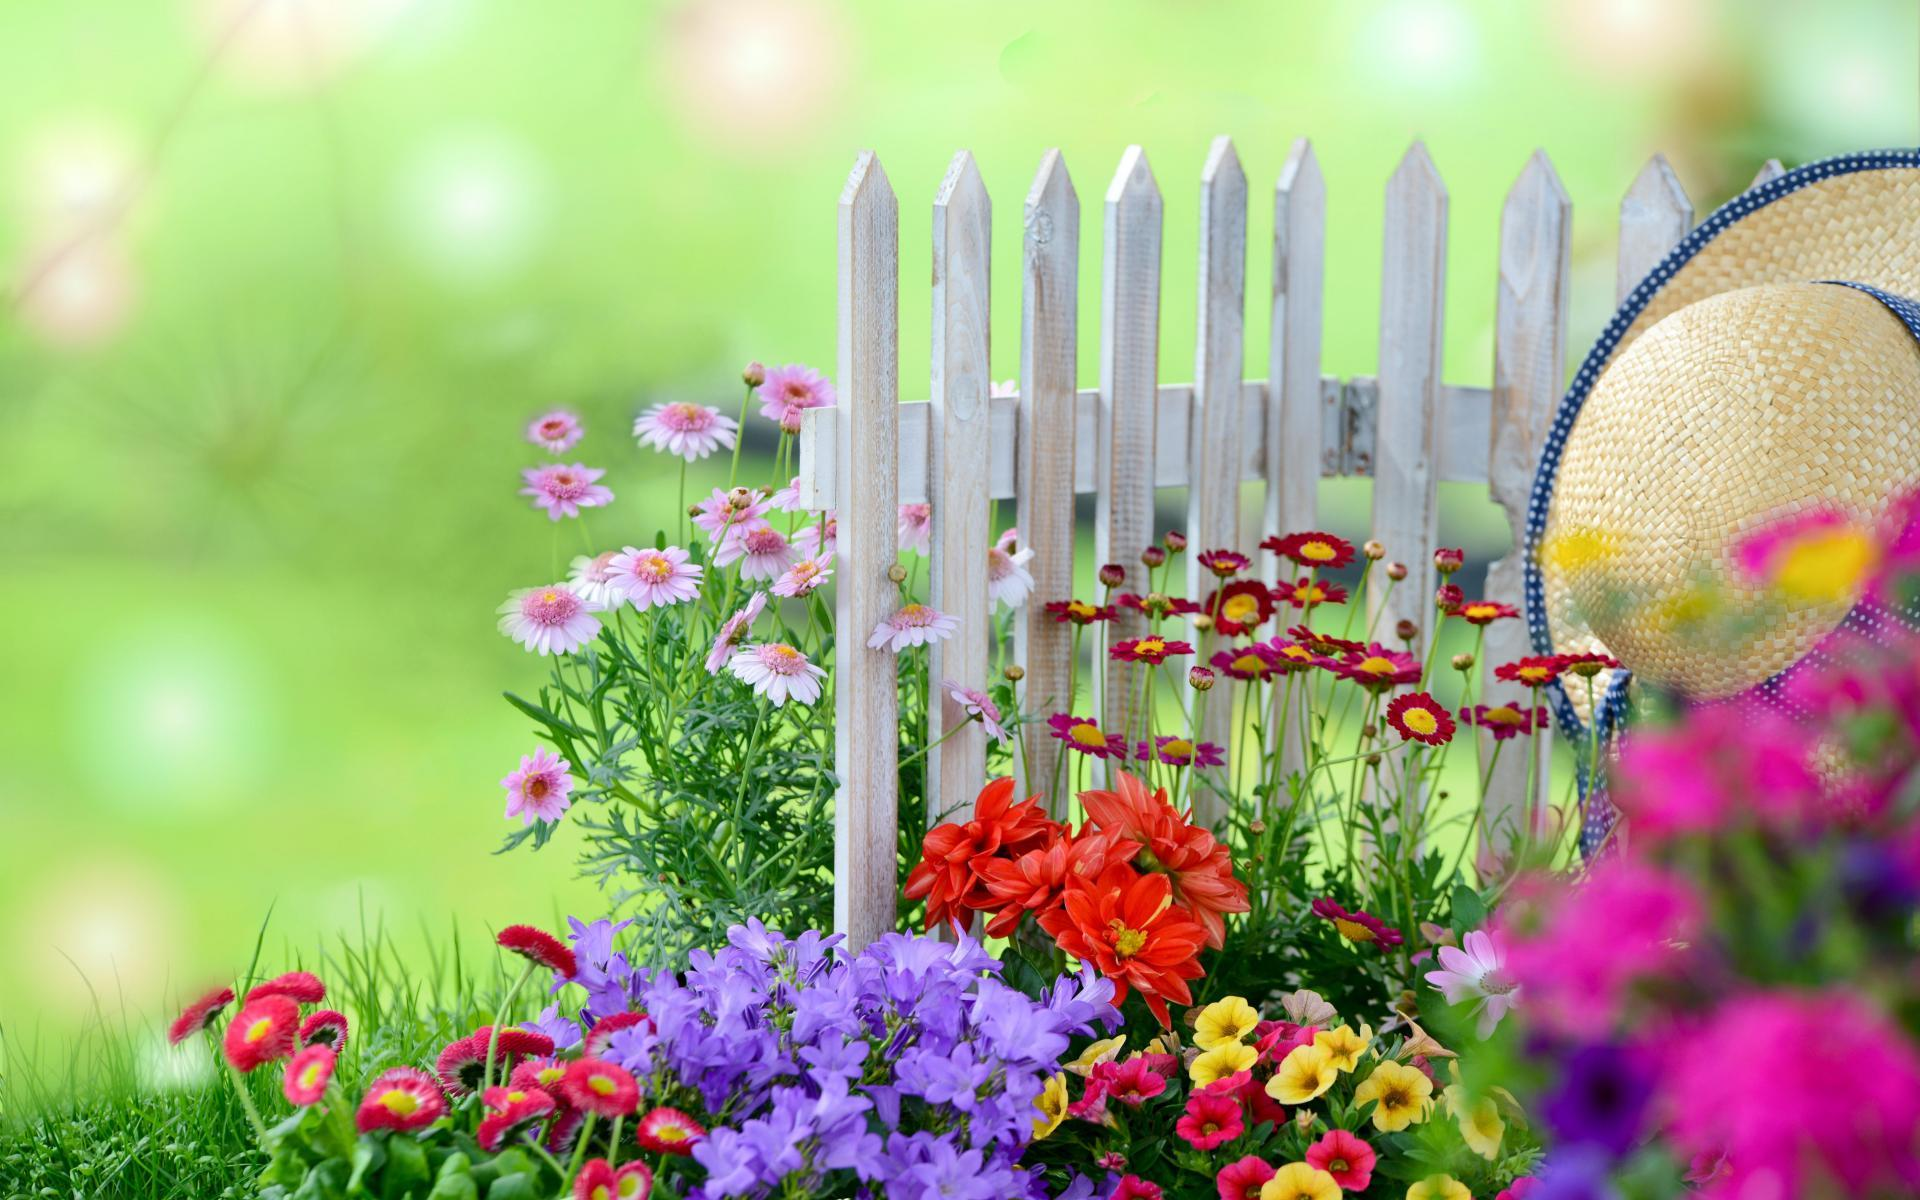 High Live Garden Backgrounds   Candace Duhart gratis only here 1920x1200